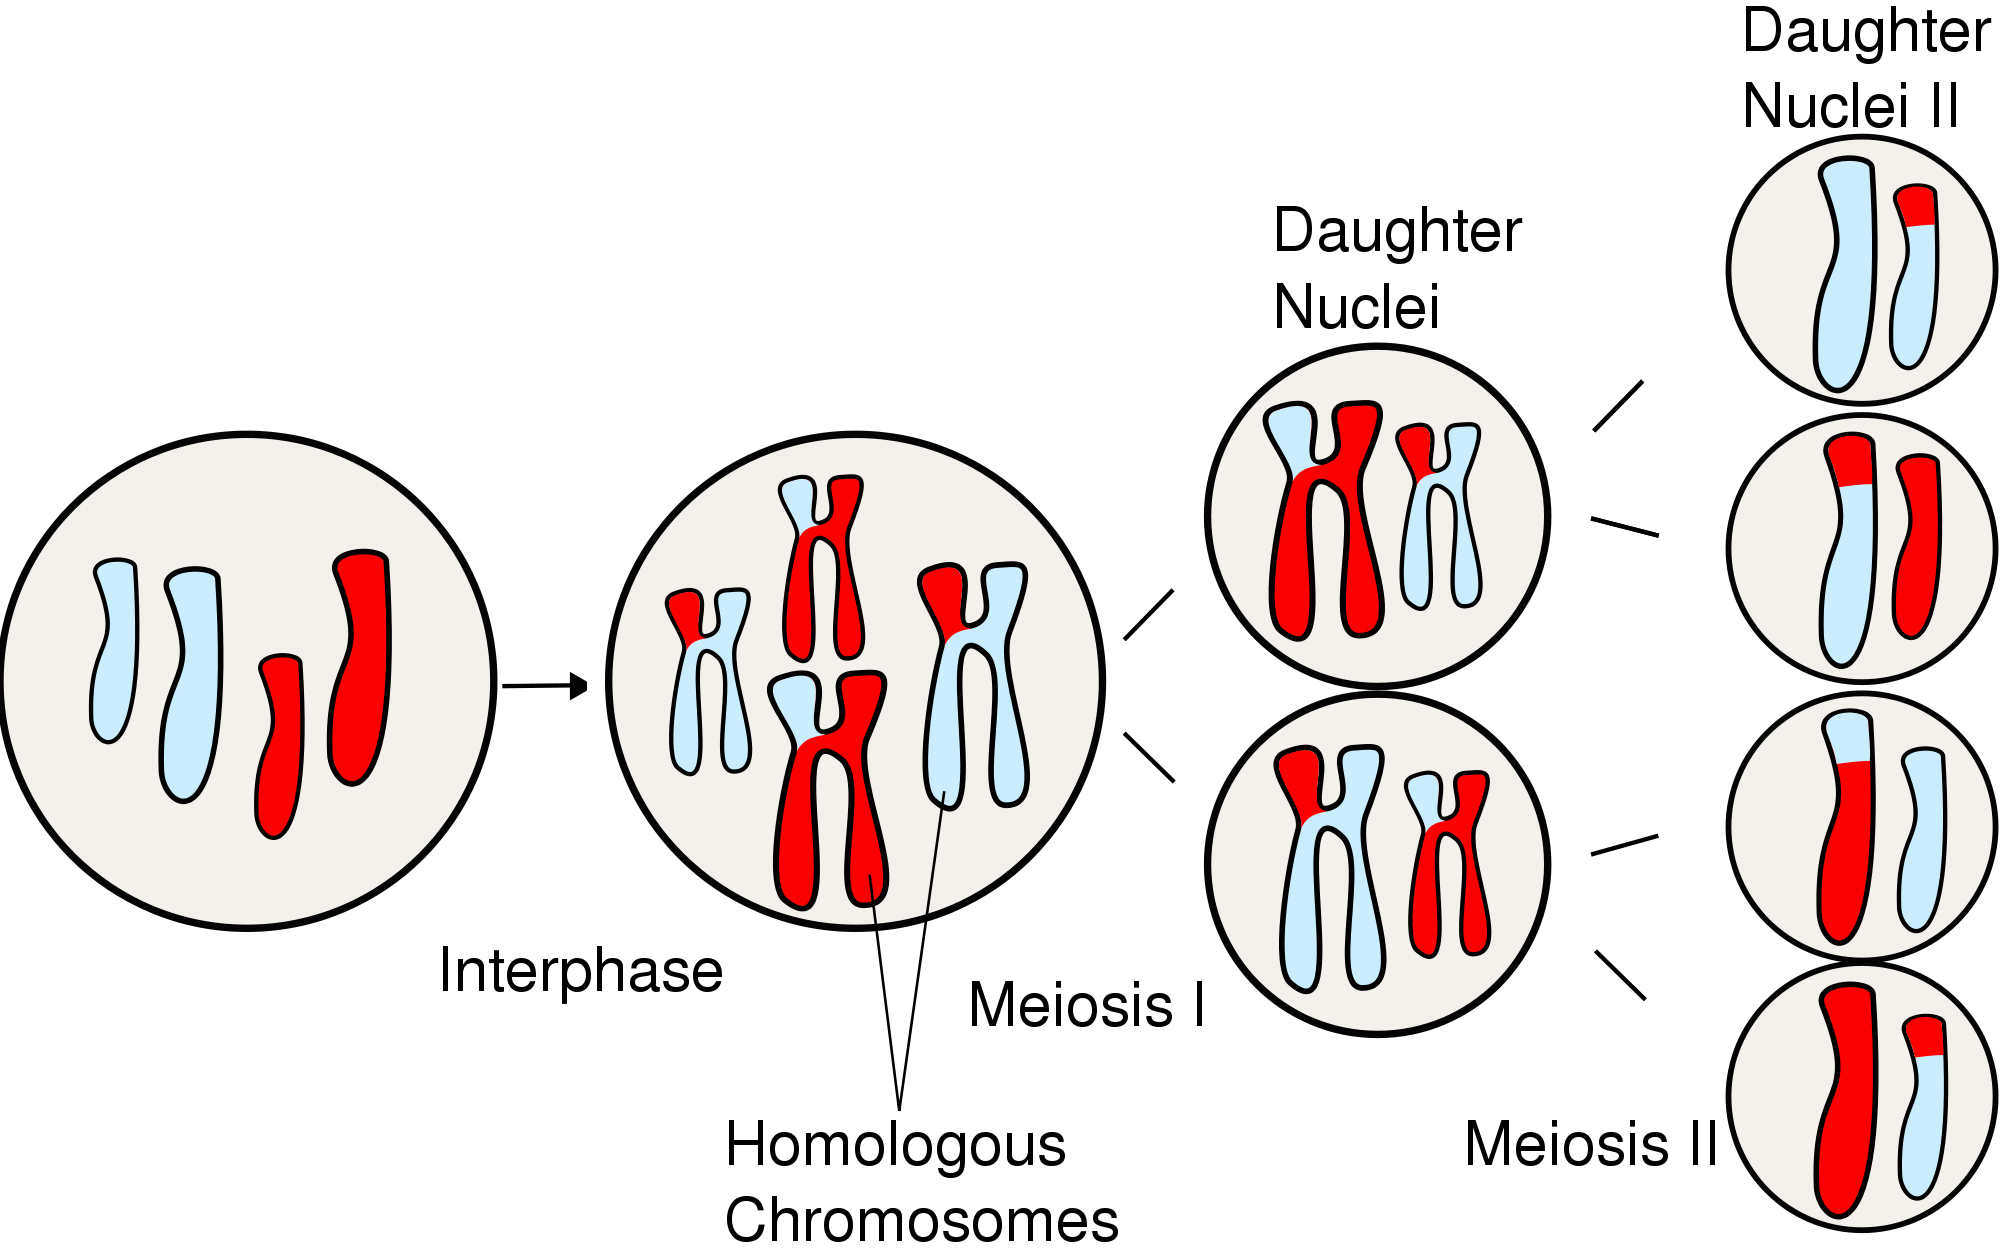 Svg events mitosis. File majoreventsinmeiosis wikimedia commons